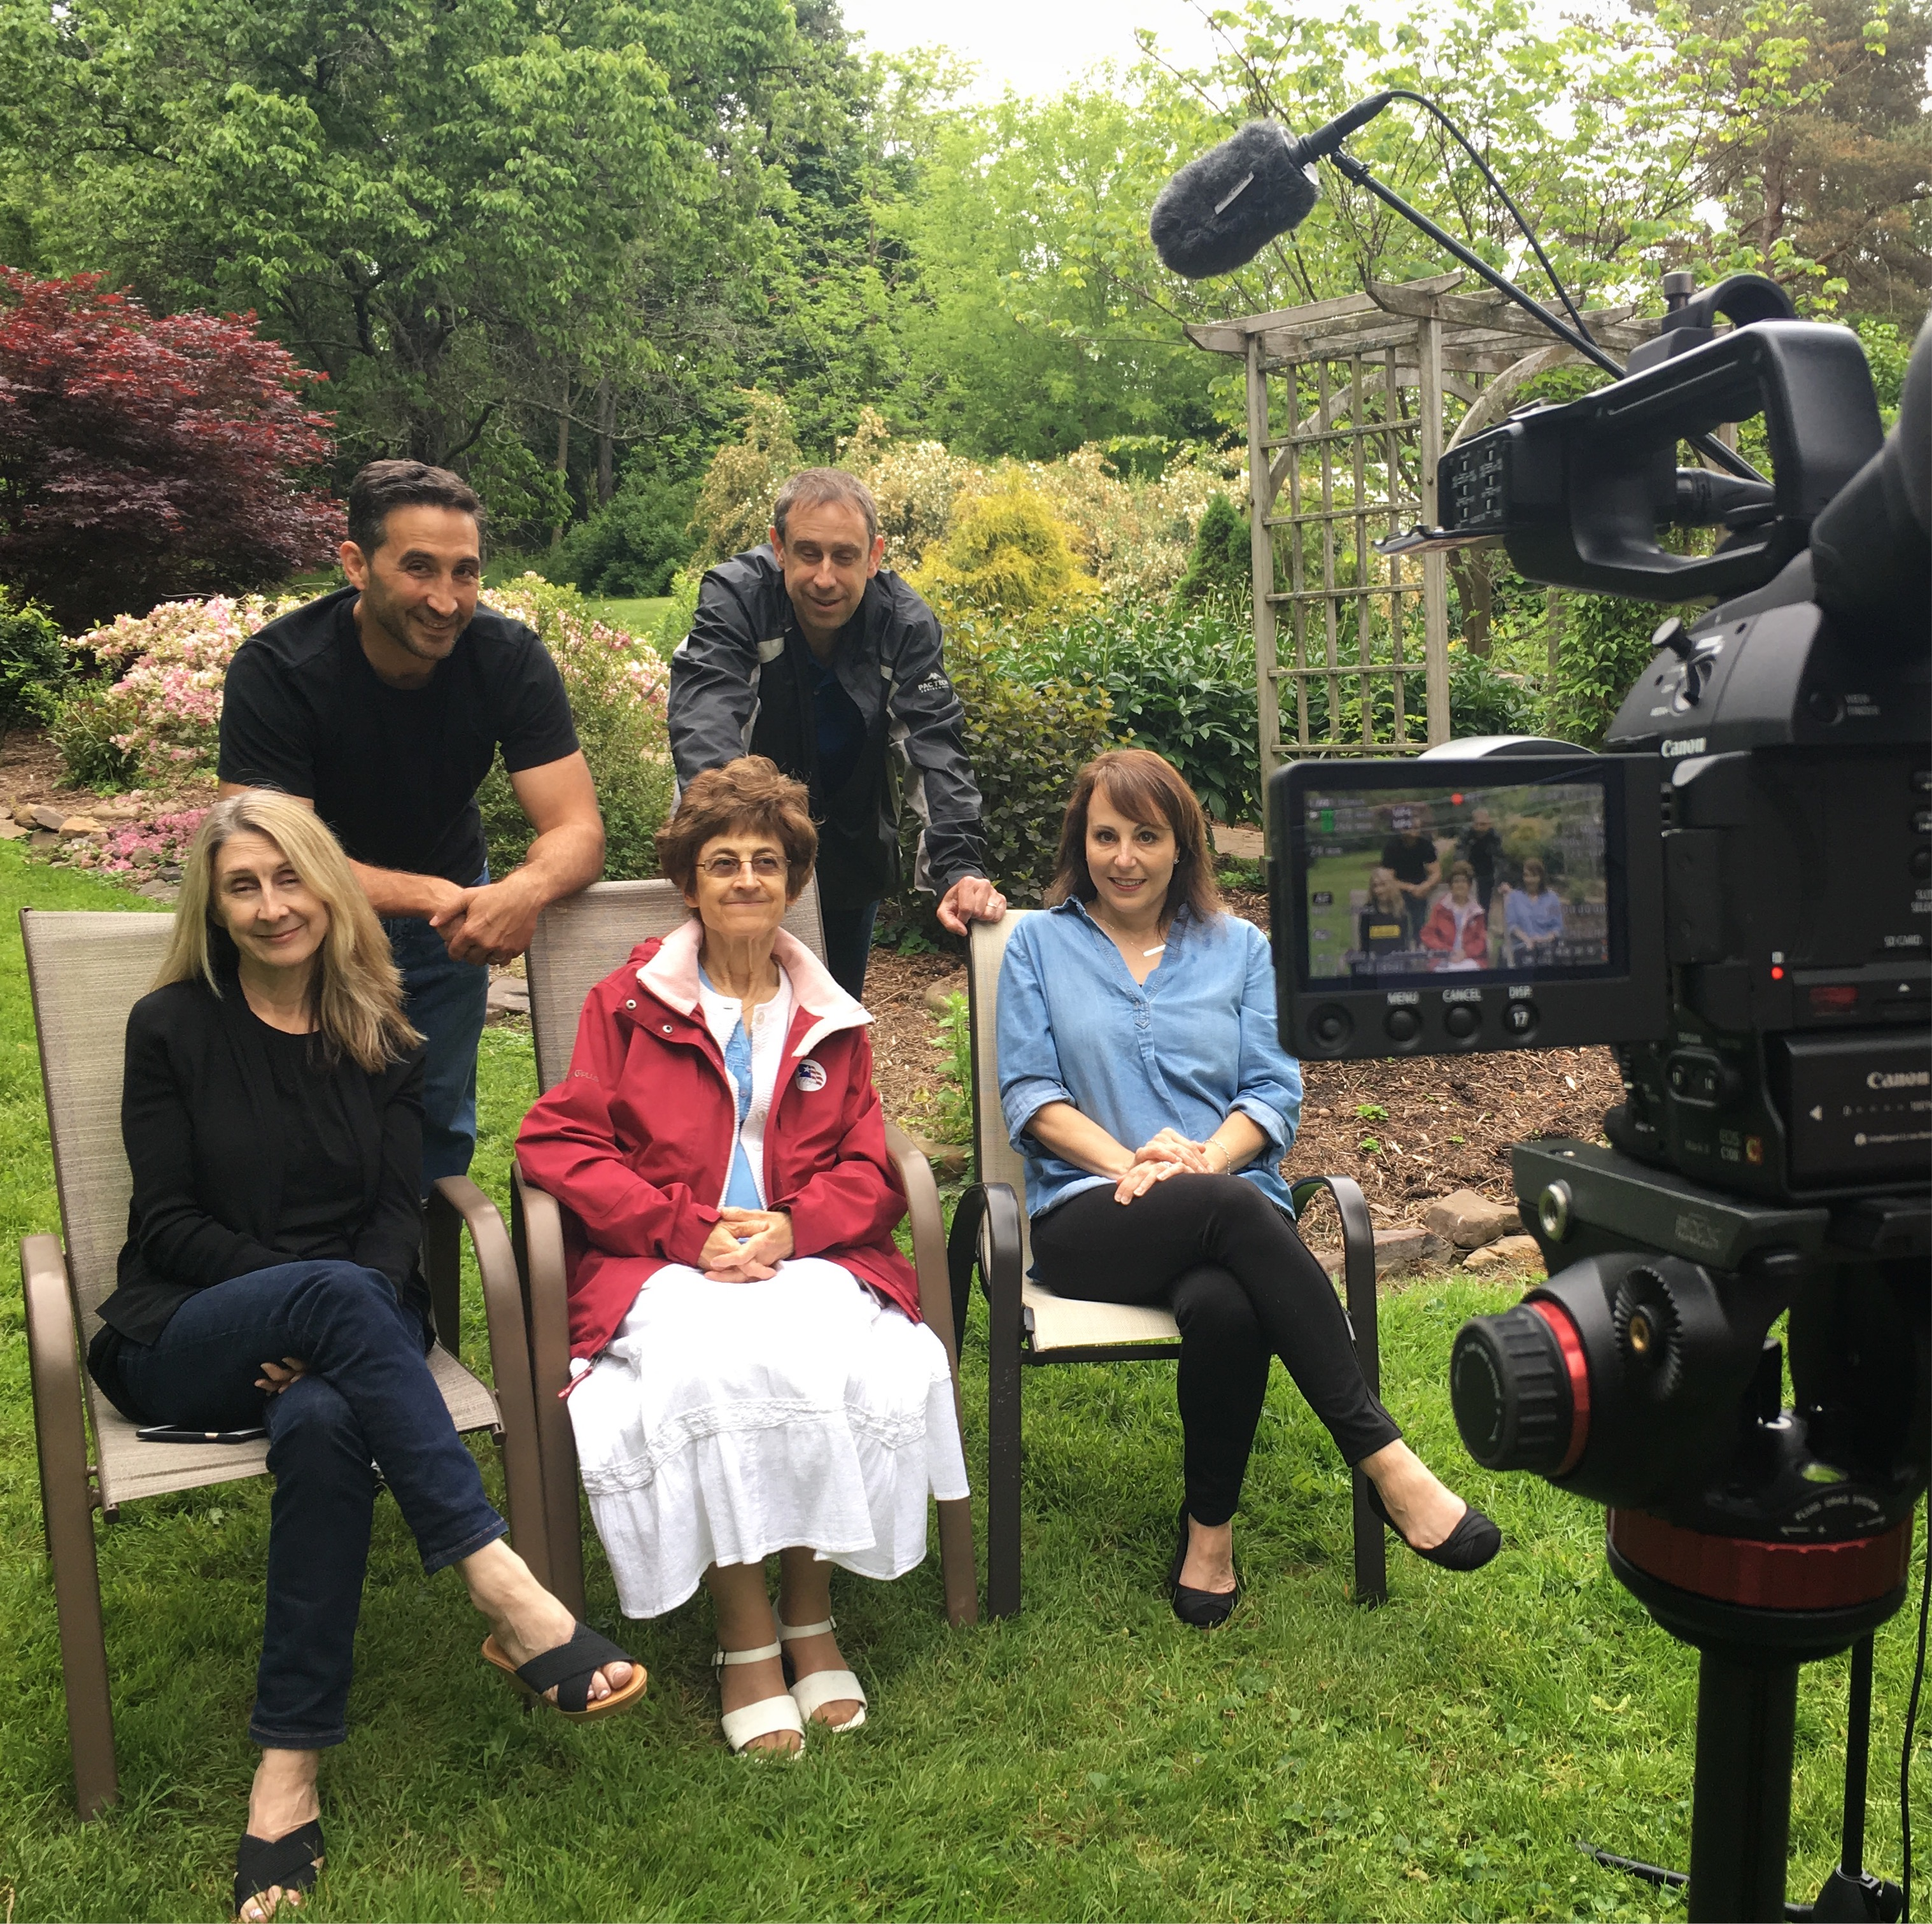 behind the scenes, filming, family, siblings, adults, legacy, memories, interview, garden, laughing, talking, mic, boom pole, camera, video, story, tell your story, Visual Legacy Productions